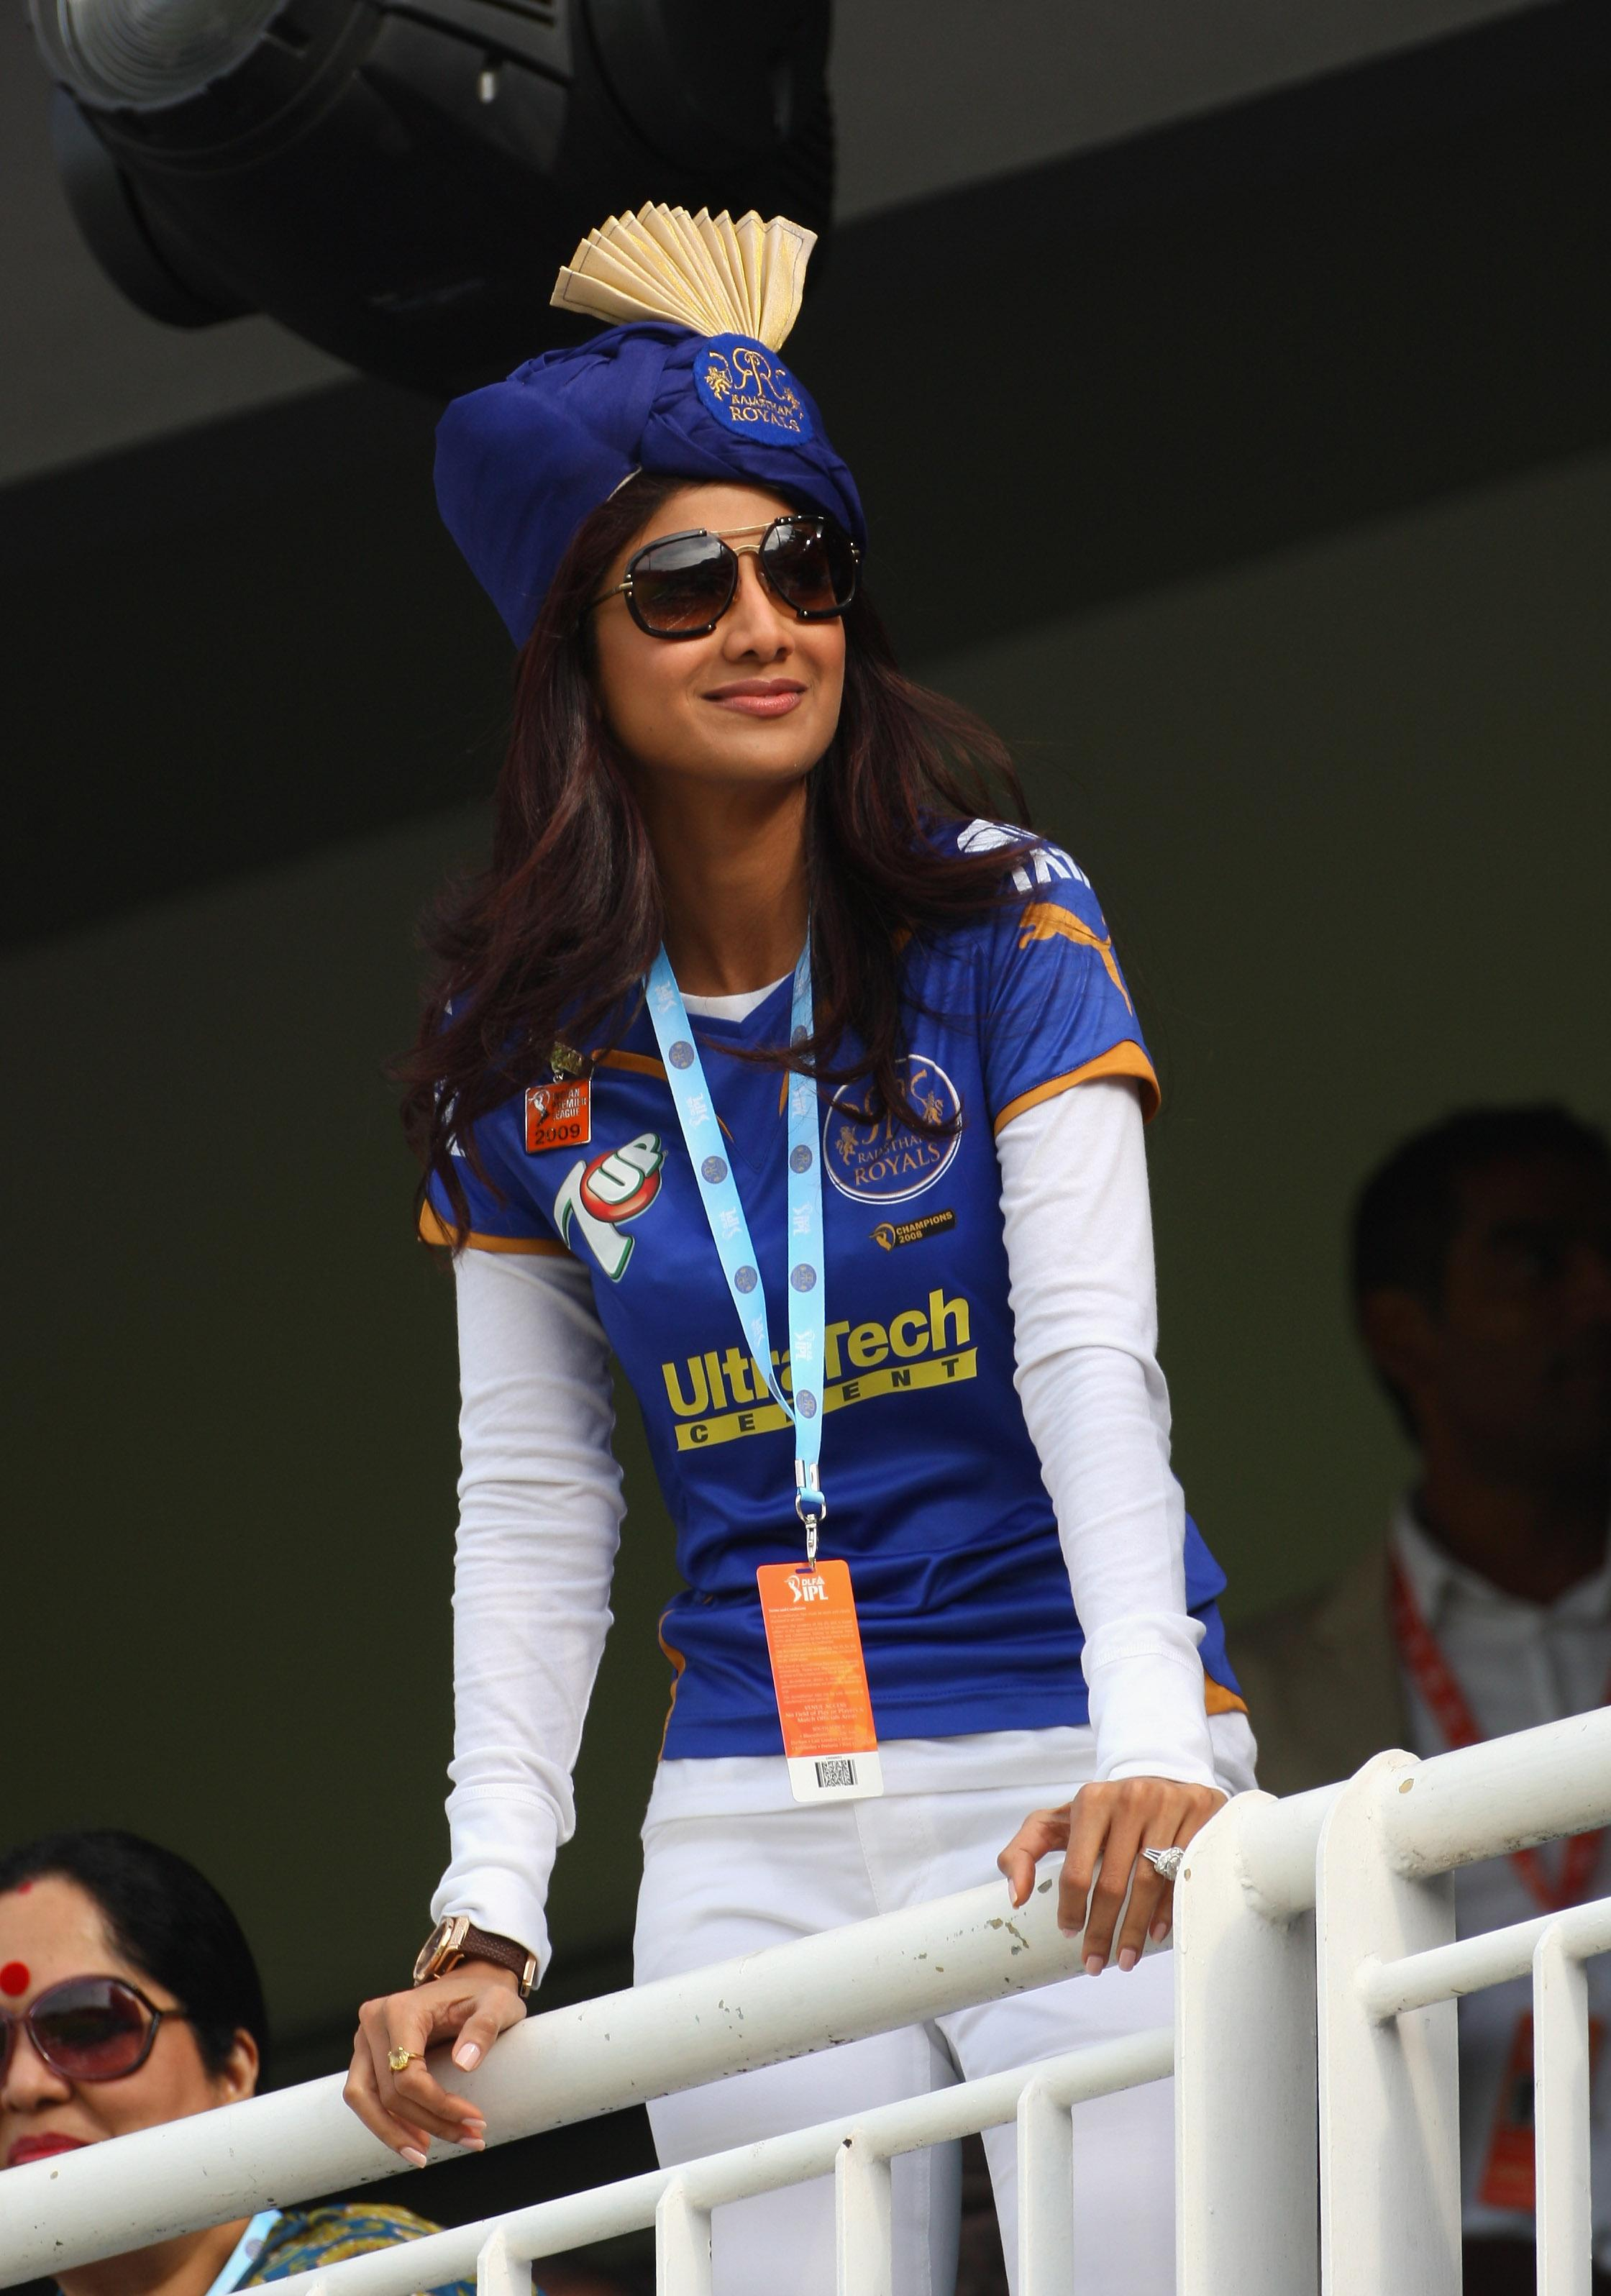 Bollywood actress Shilpa Shetty and her husband bought a stake in the Rajasthan Royals in February 2009